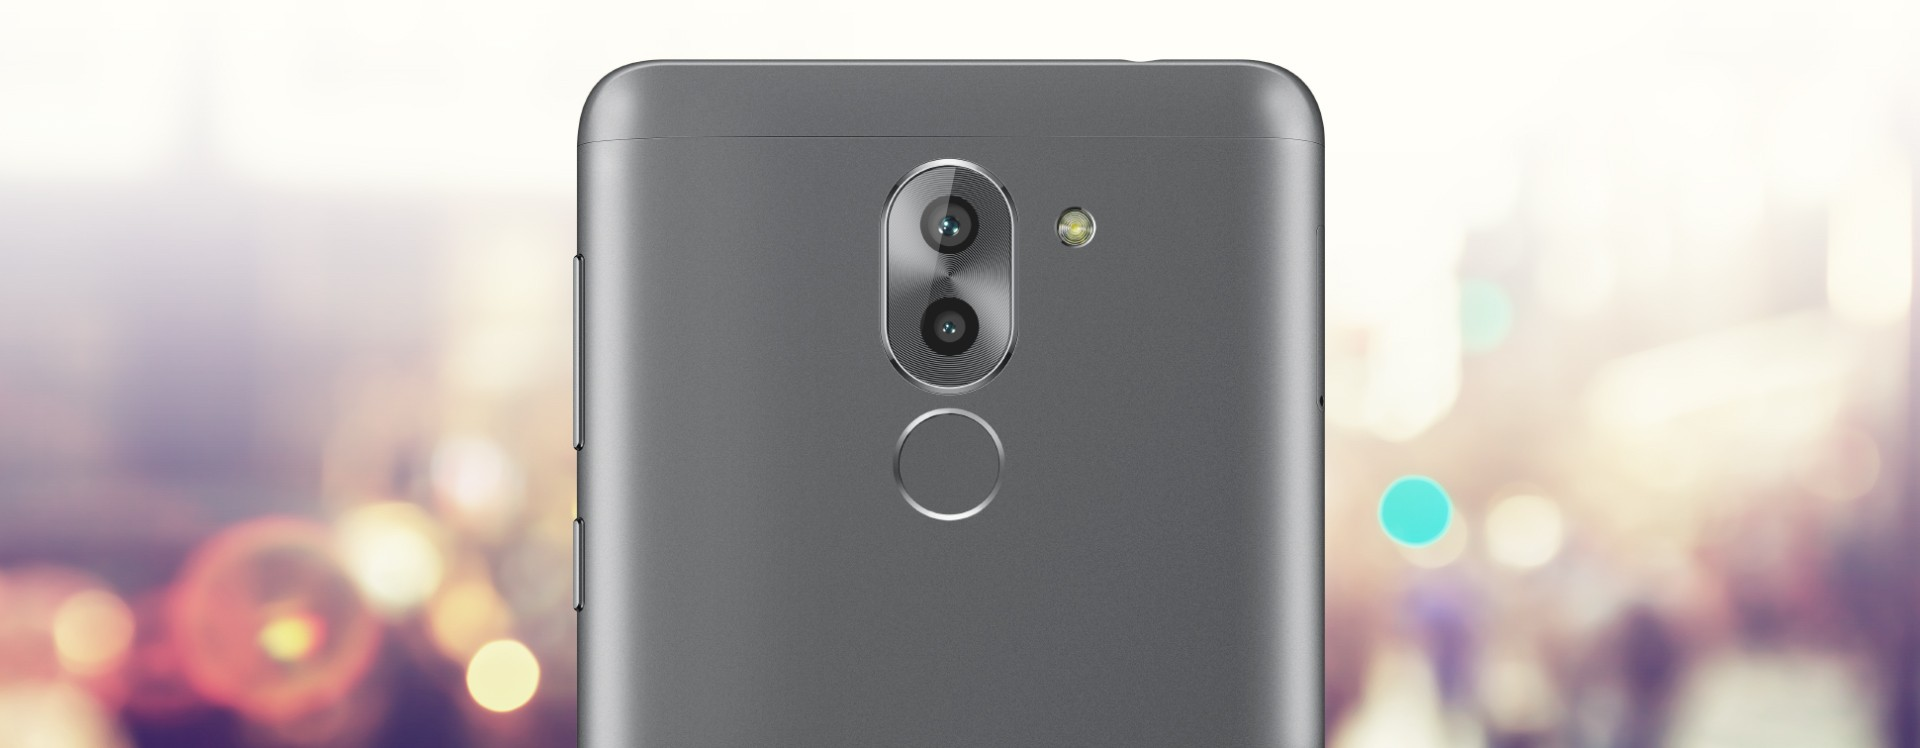 Dual Camera For An Enchanting World